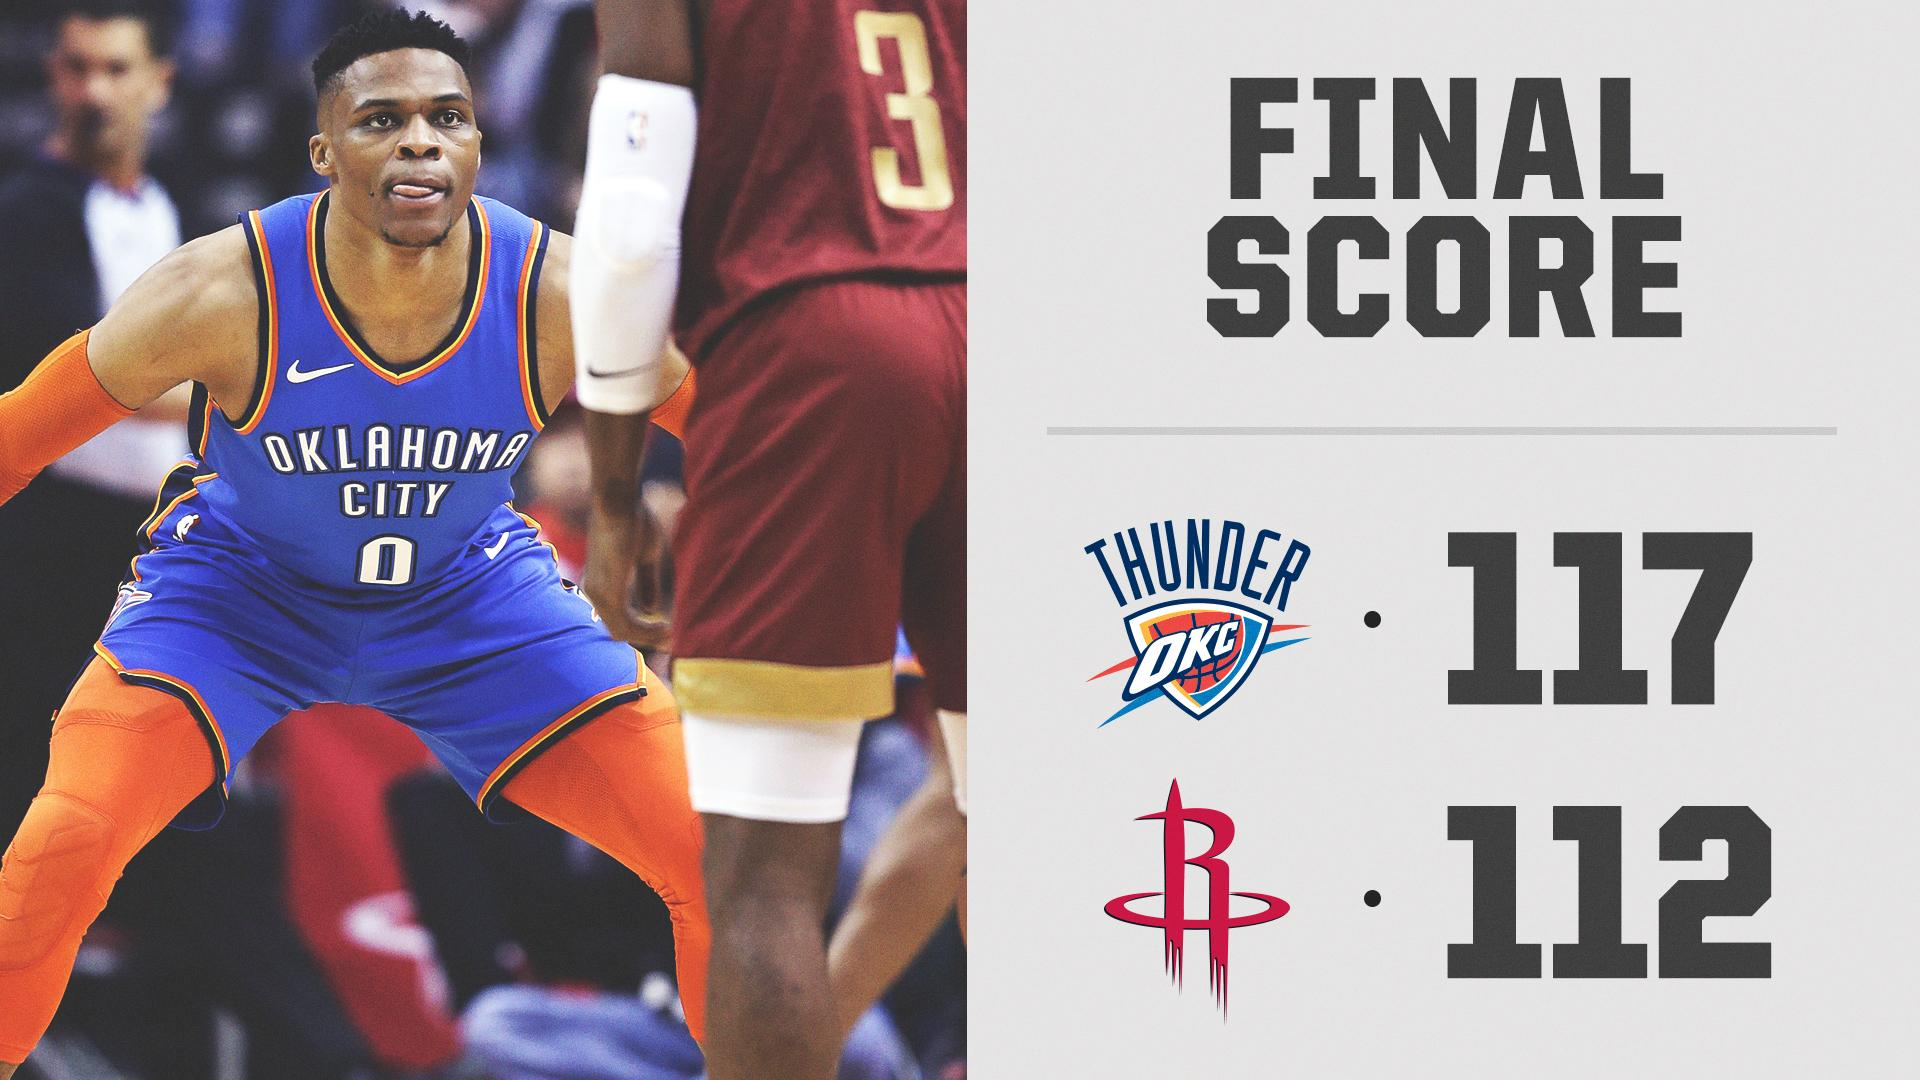 COMEBACK. COMPLETE.  The Thunder were down 26 points and still get the W in Houston. https://t.co/BKGv6CK9mz